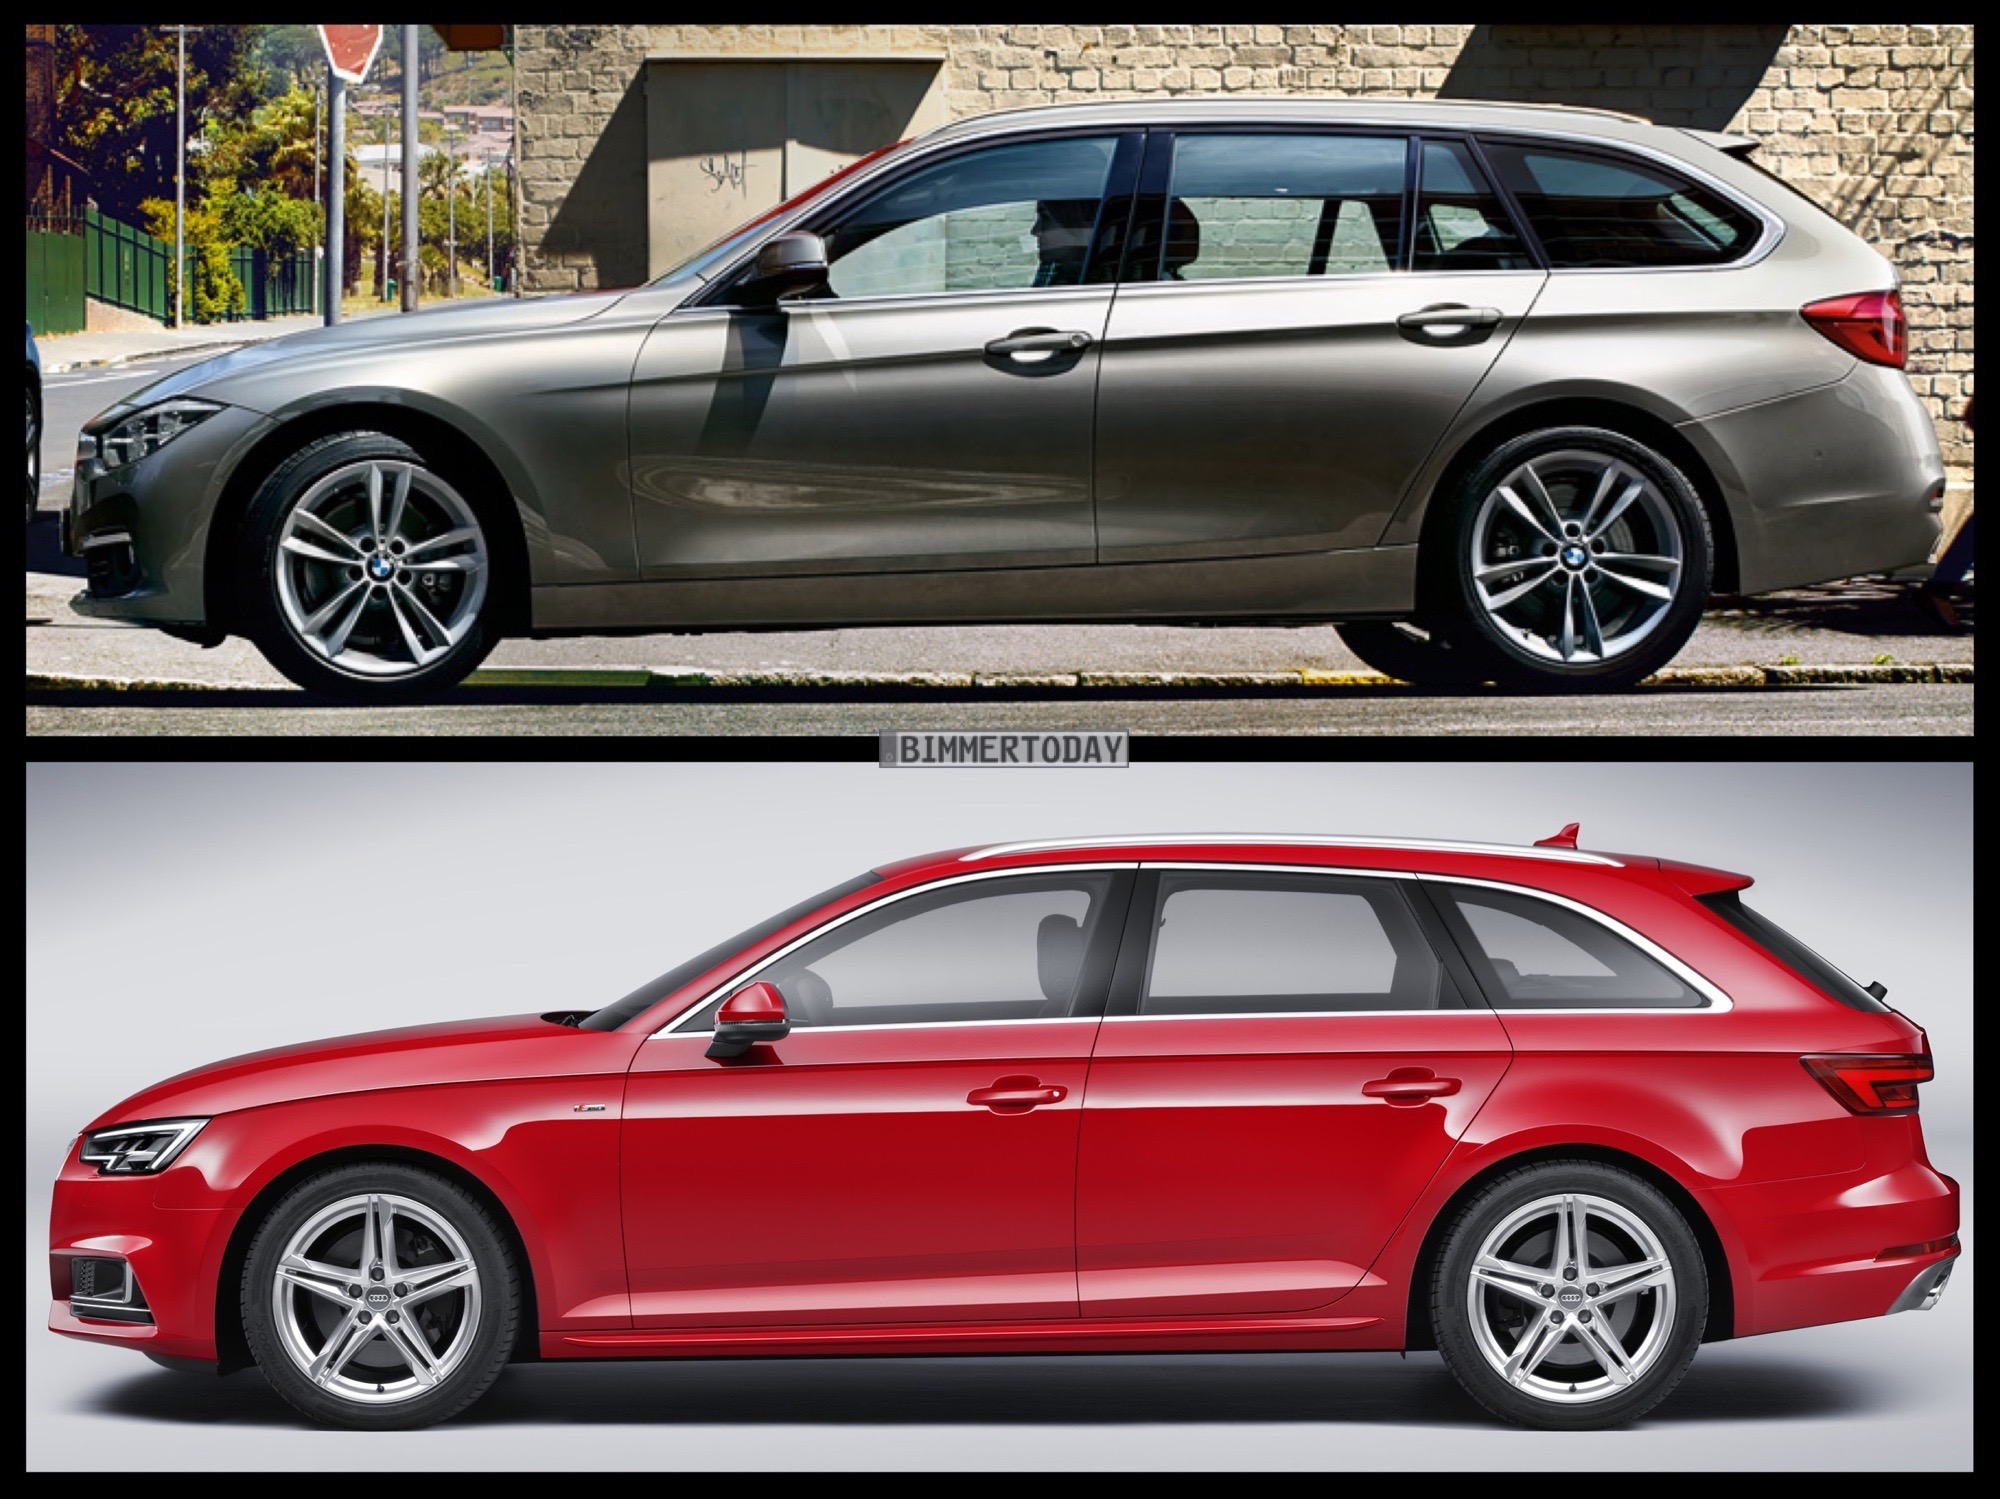 Bmw 3 Series Touring Vs Audi A4 Avant Vs Mercedes Benz C Class Estate